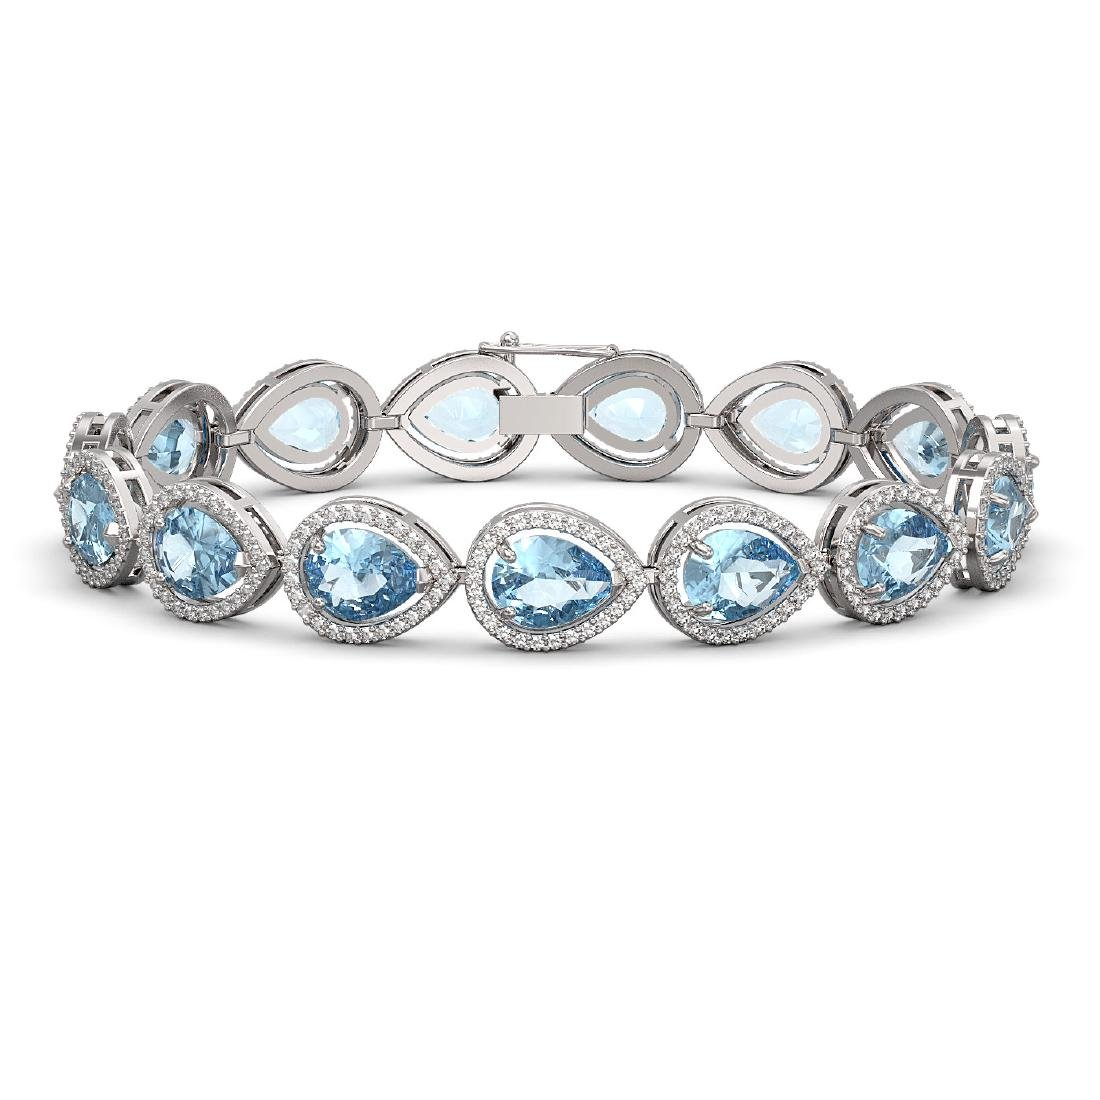 19.85 CTW Aquamarine & Diamond Halo Bracelet 10K White